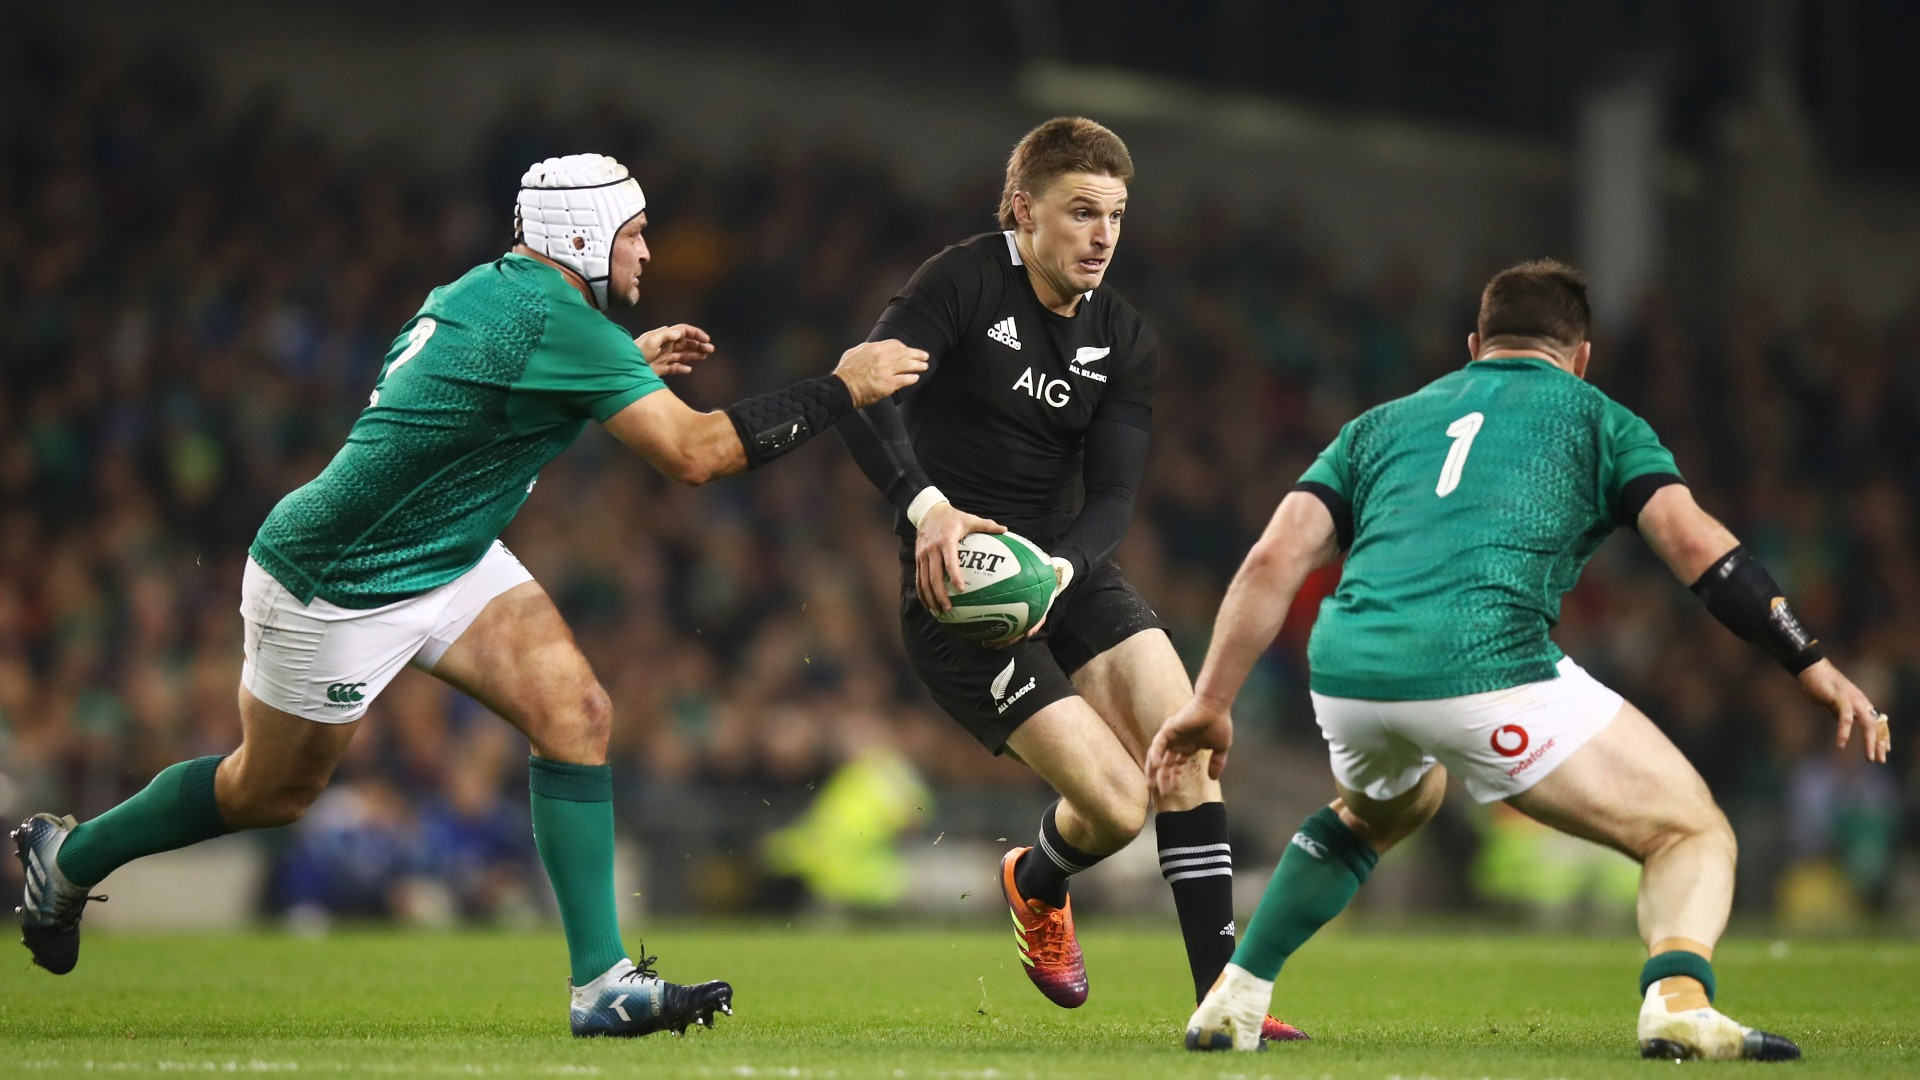 Rugby World Cup 2019: New Zealand v Ireland